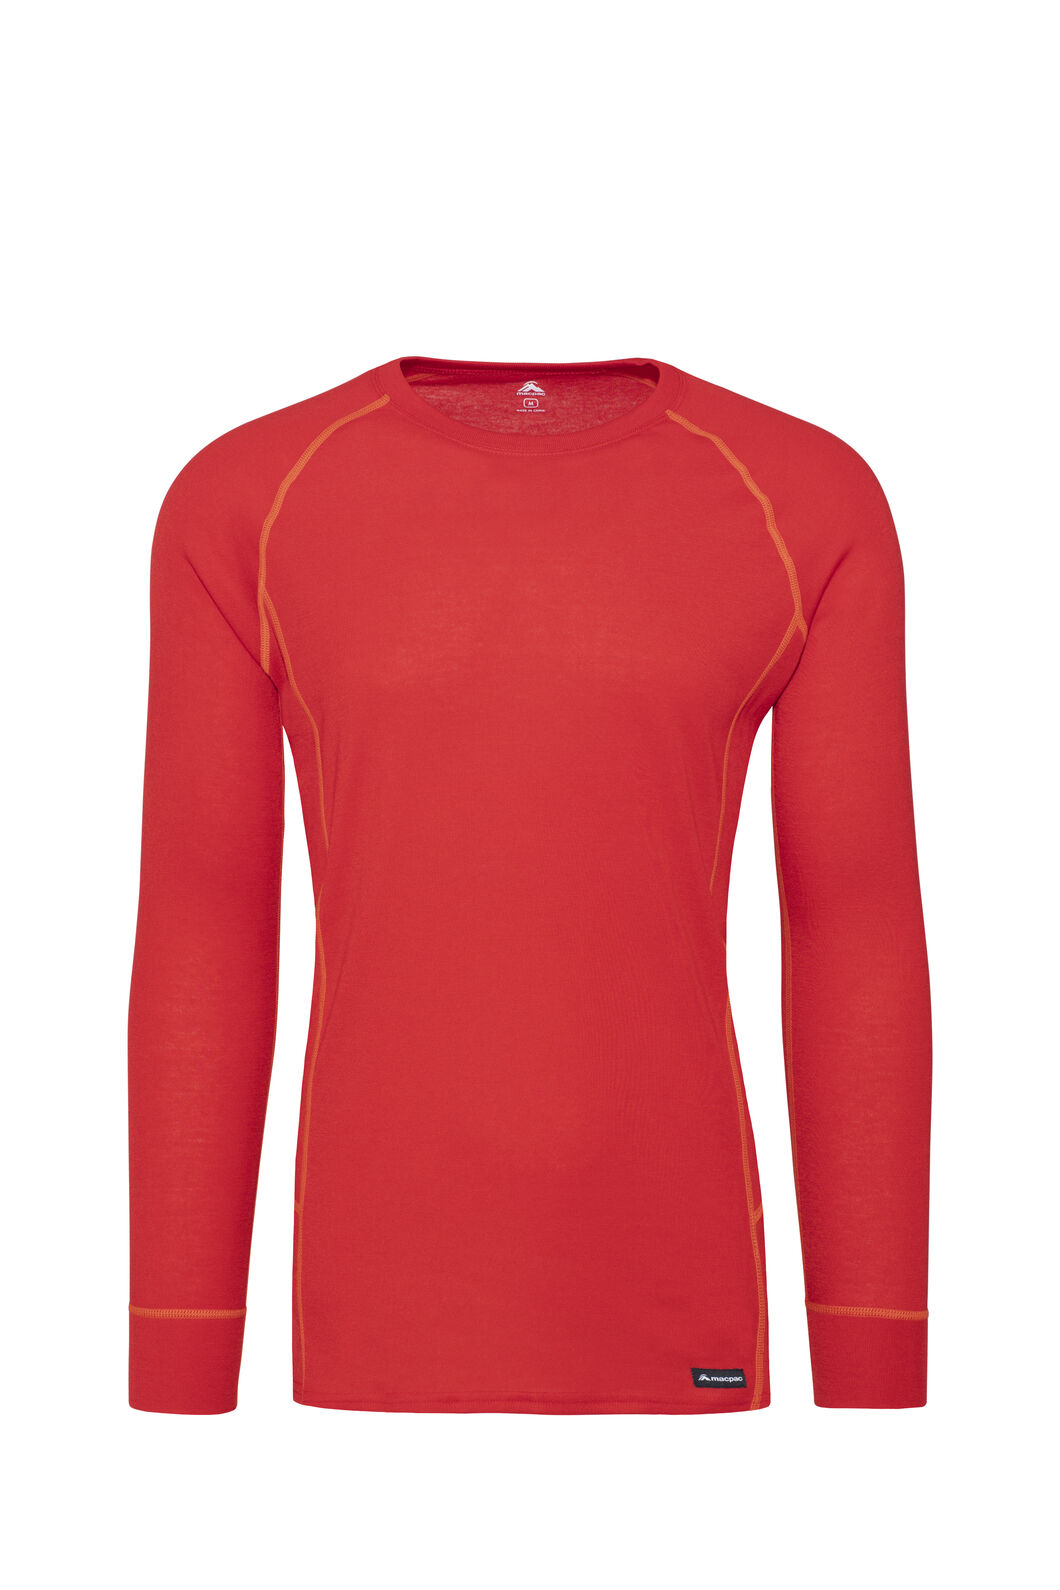 Macpac Geothermal Long Sleeve Top — Men's, Salsa, hi-res